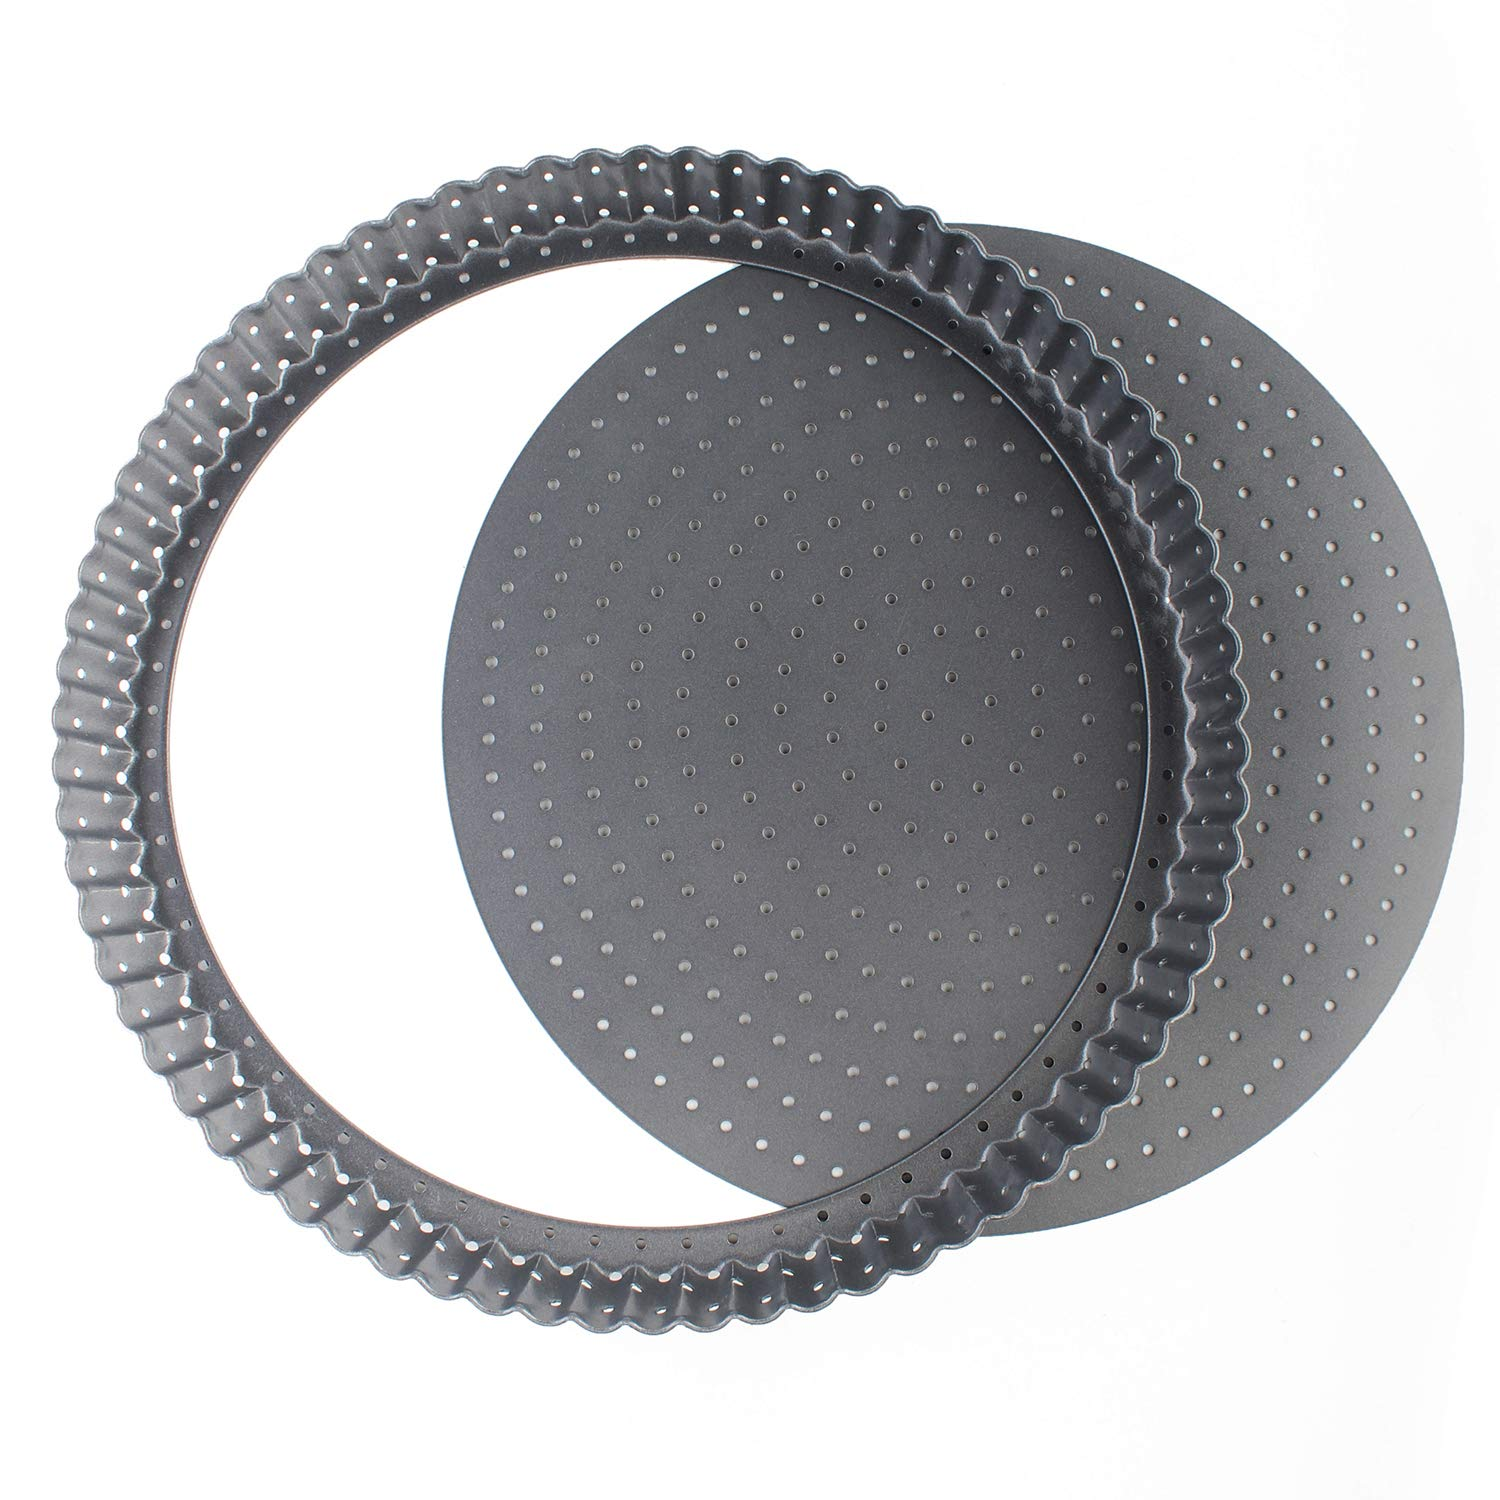 Vanly 11-Inch Perforated Quiche Tart Pan with Removable Base, Non-stick Loose Bottom Tart Pie Pizza Pan, Round Bakeware